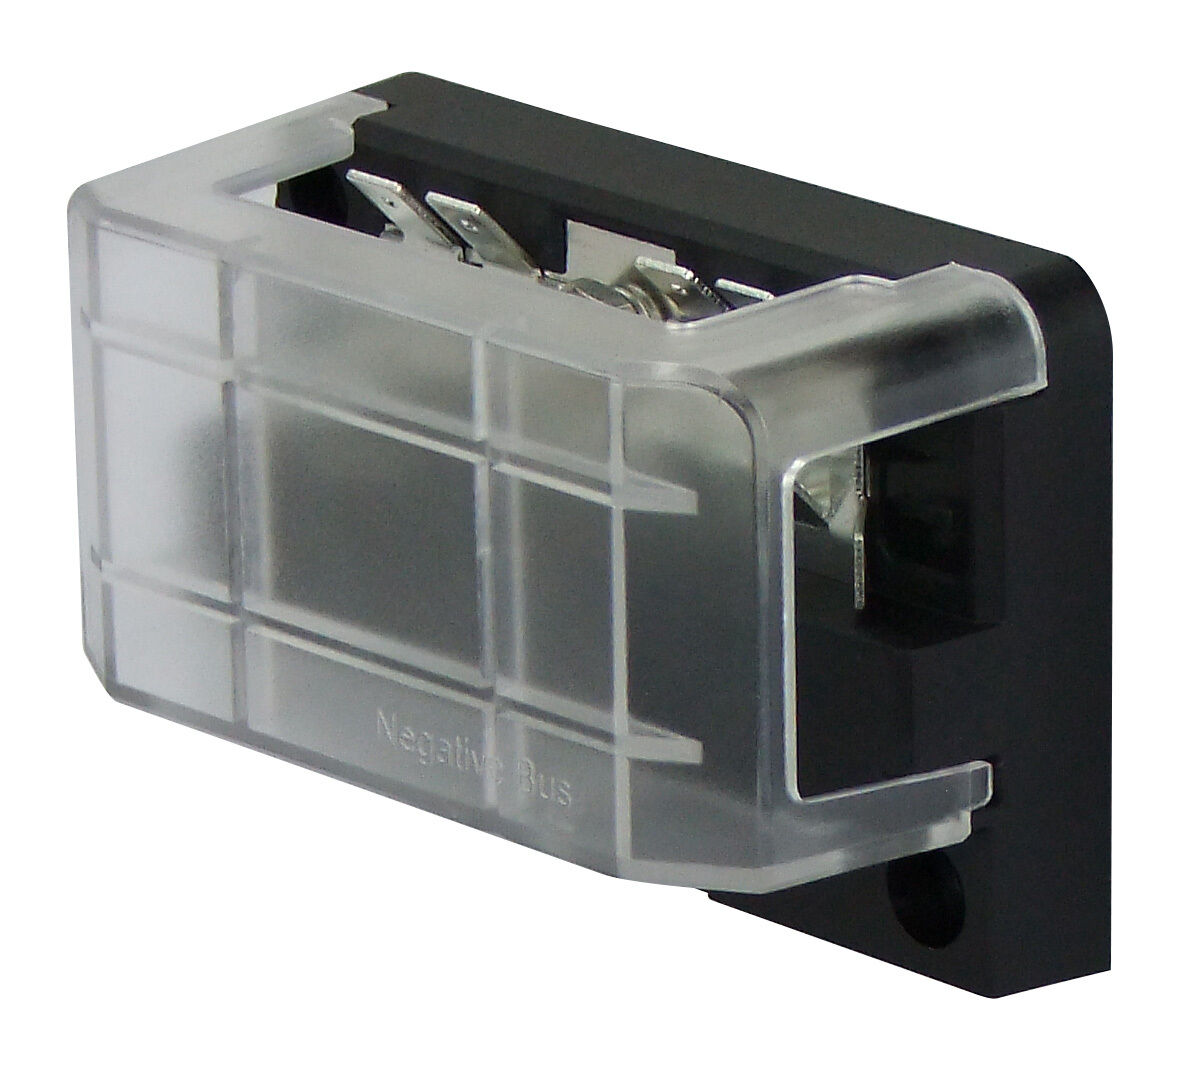 Buss bar way with circuit fuse box modular kit v